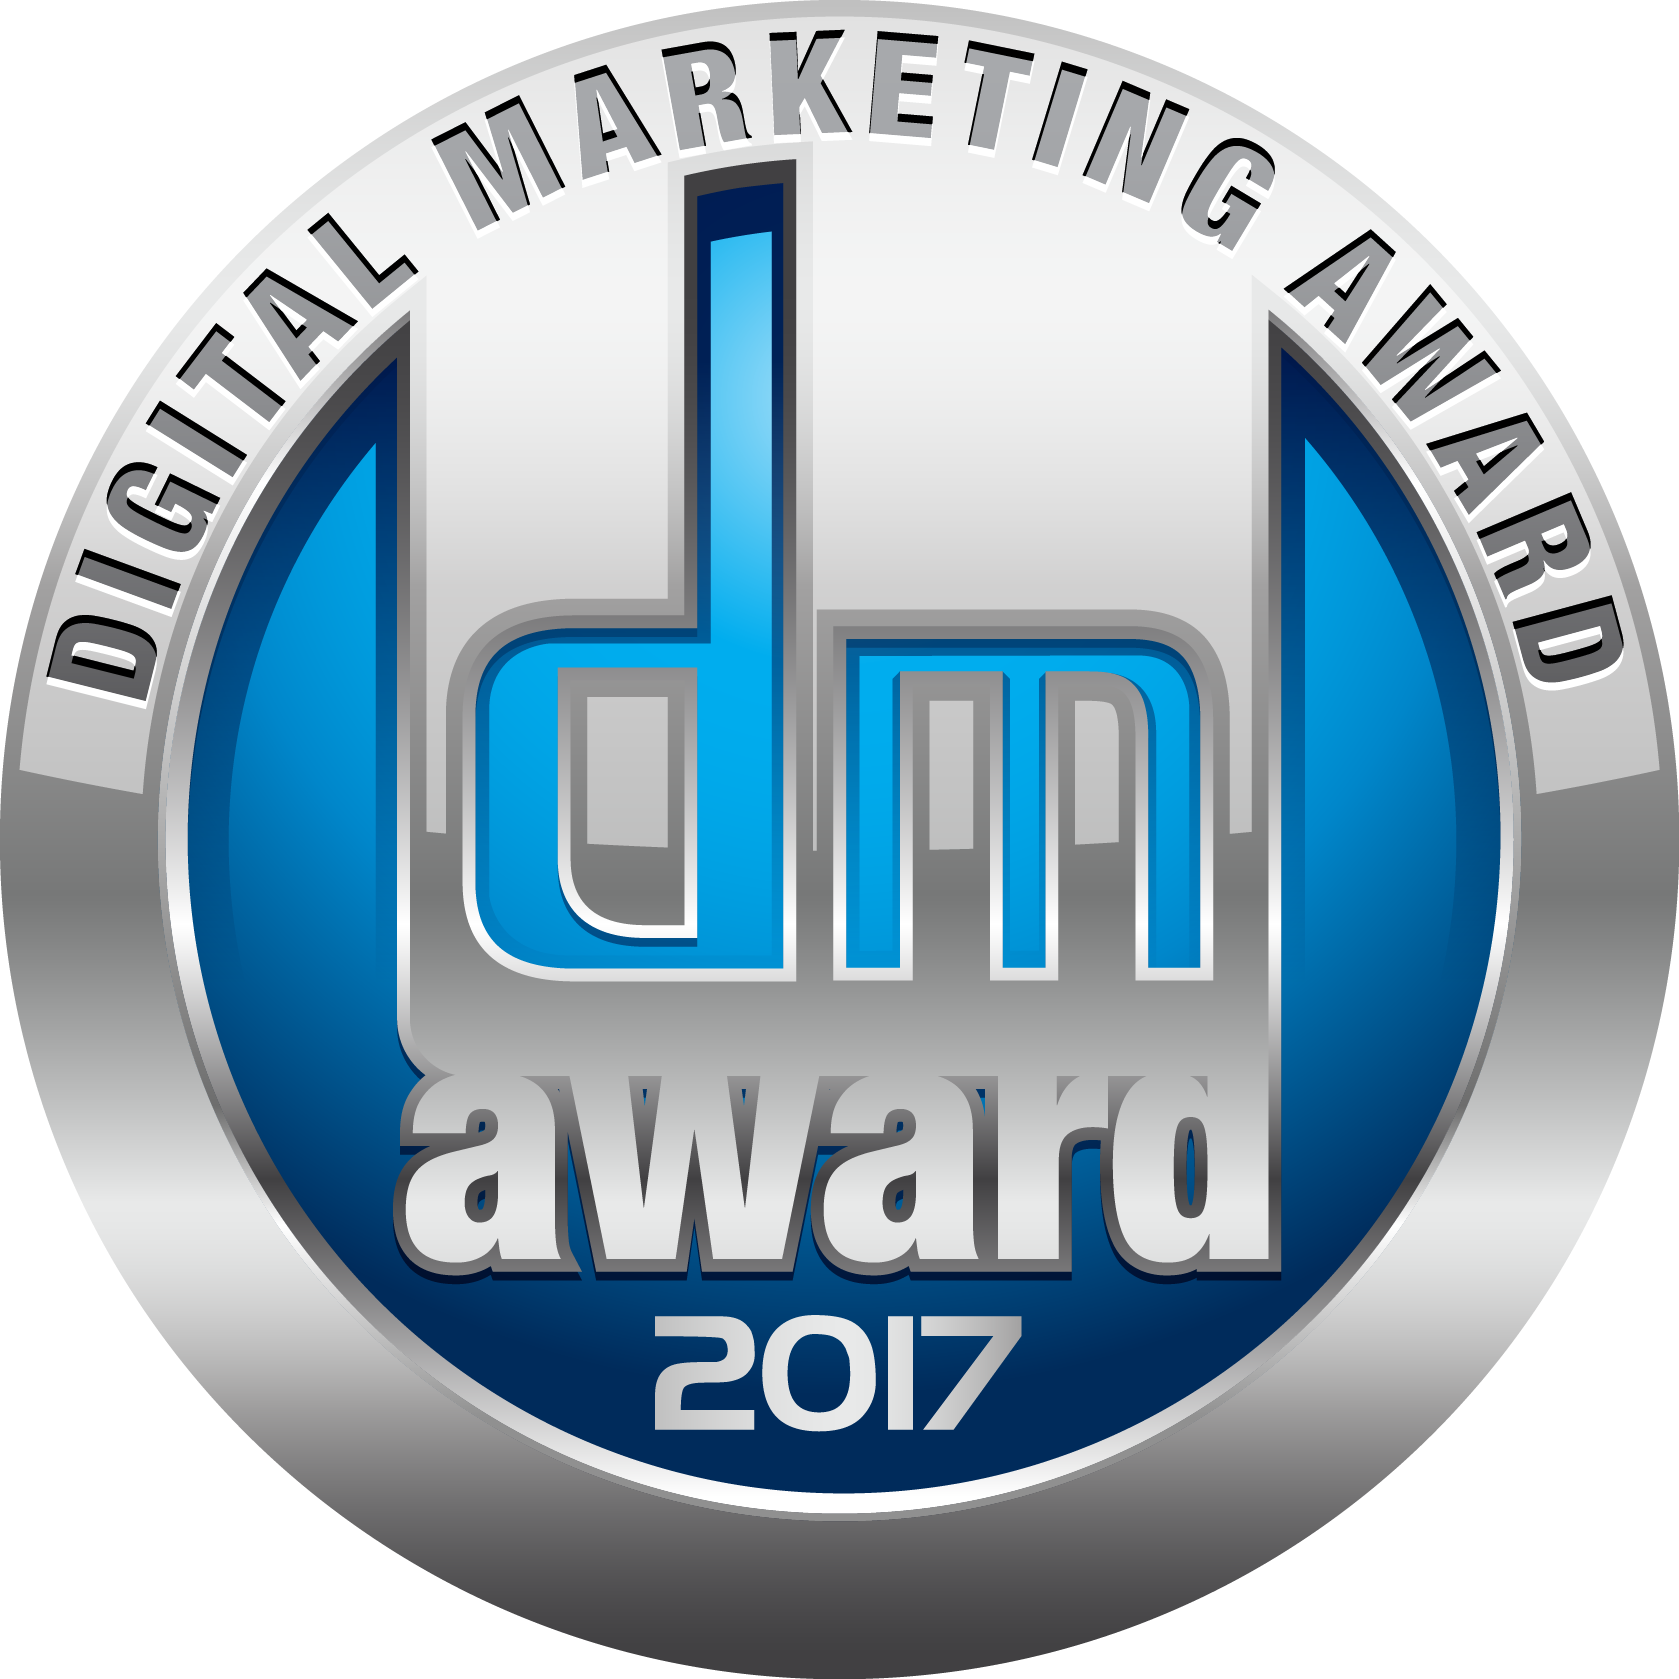 Digital Marketing Award 2017